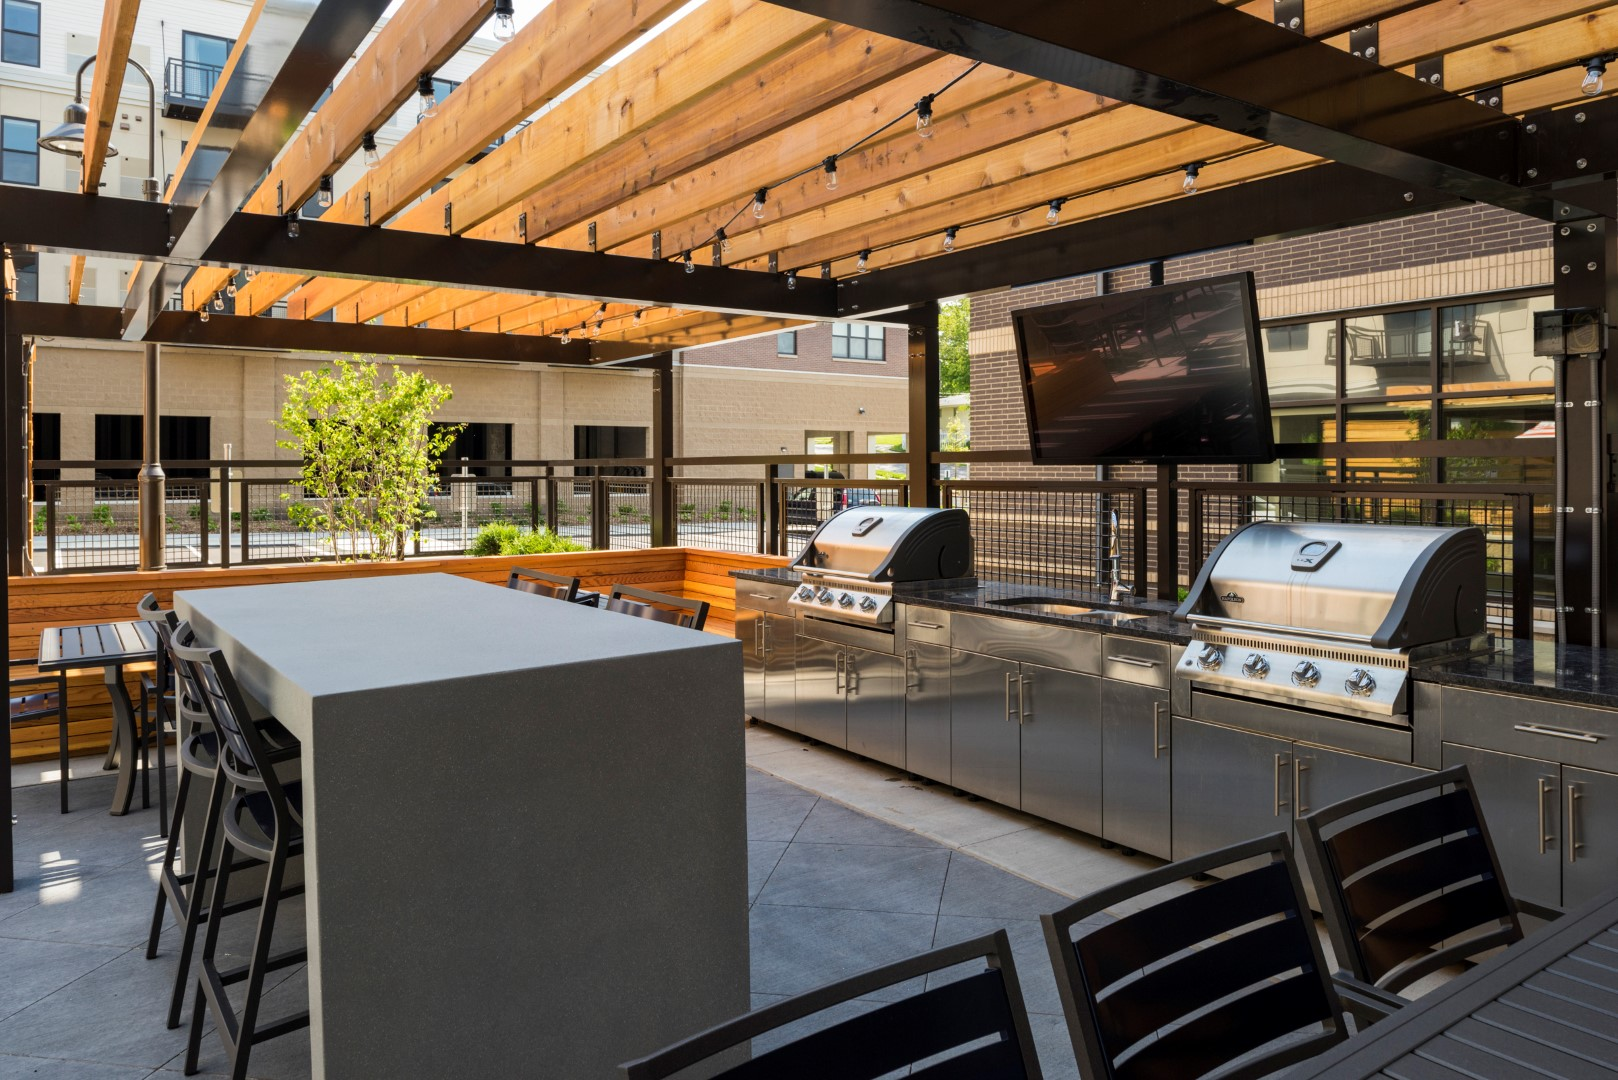 The Shoreham Apartments in St Louis Park, MN_Exteriors and Amenties_Grilling Area.jpg